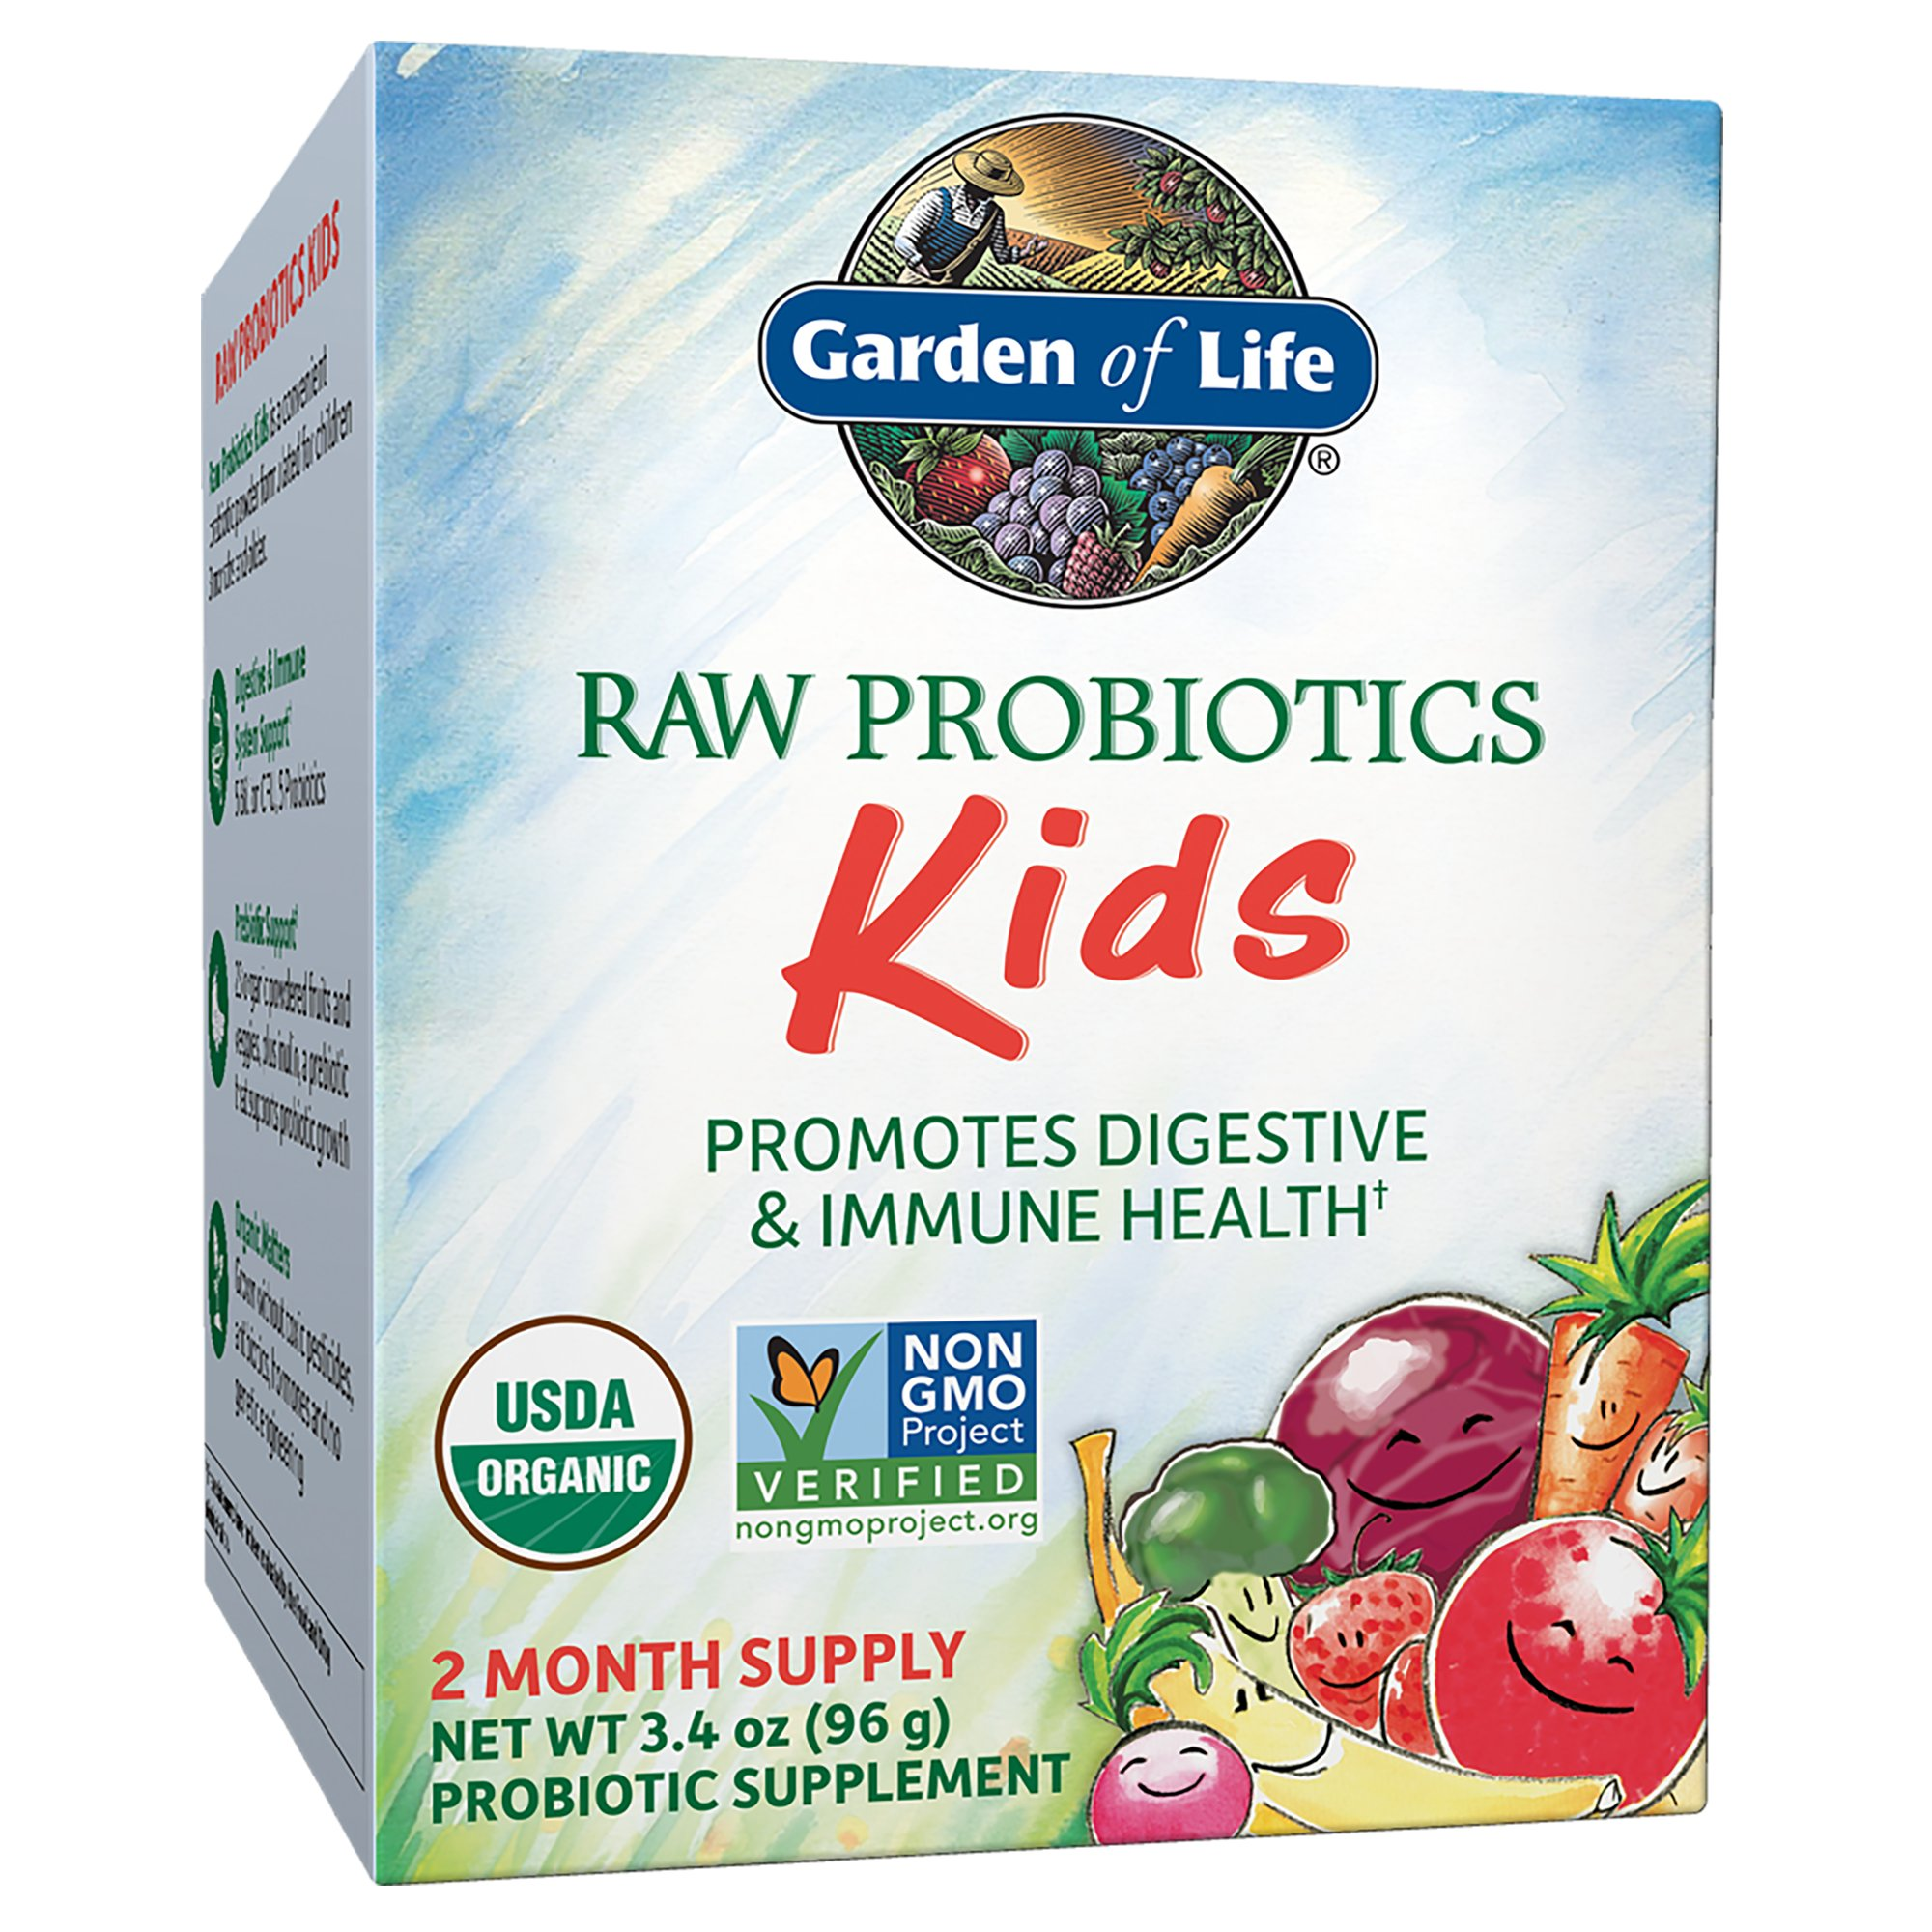 Garden of Life Organic Raw Probiotics Kids Shop Probiotics at HEB